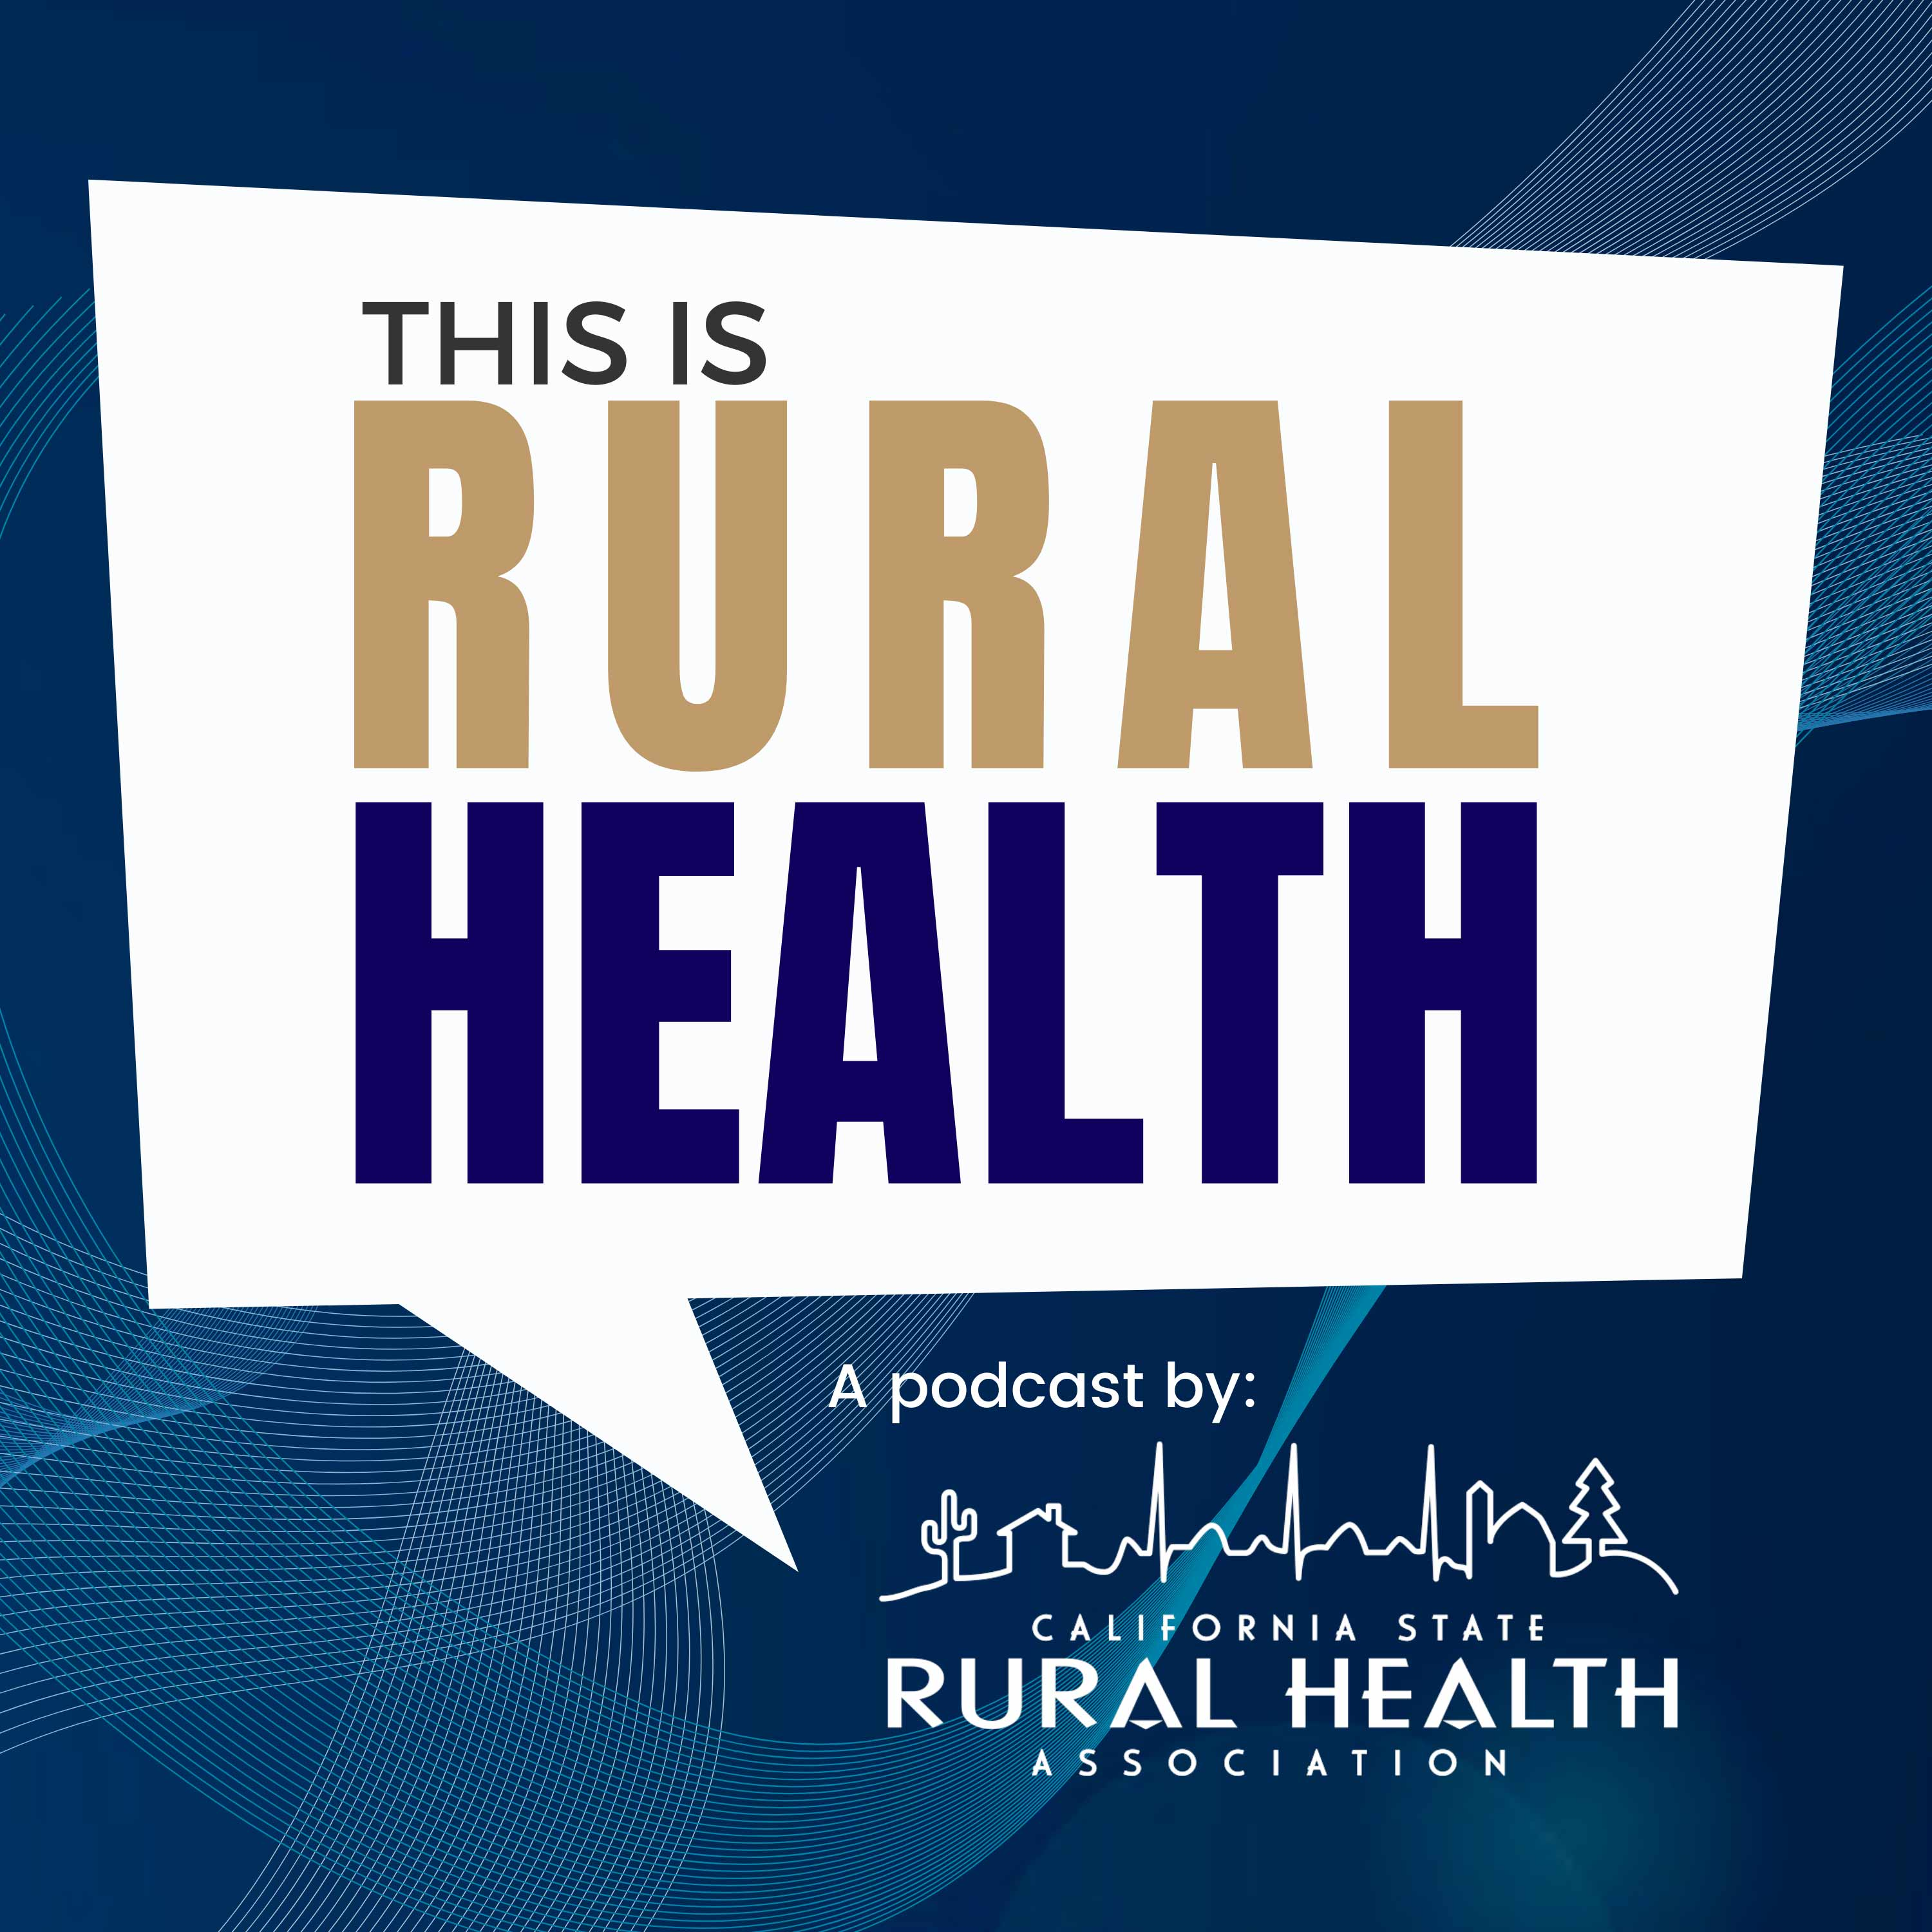 Artwork for podcast This Is Rural Health